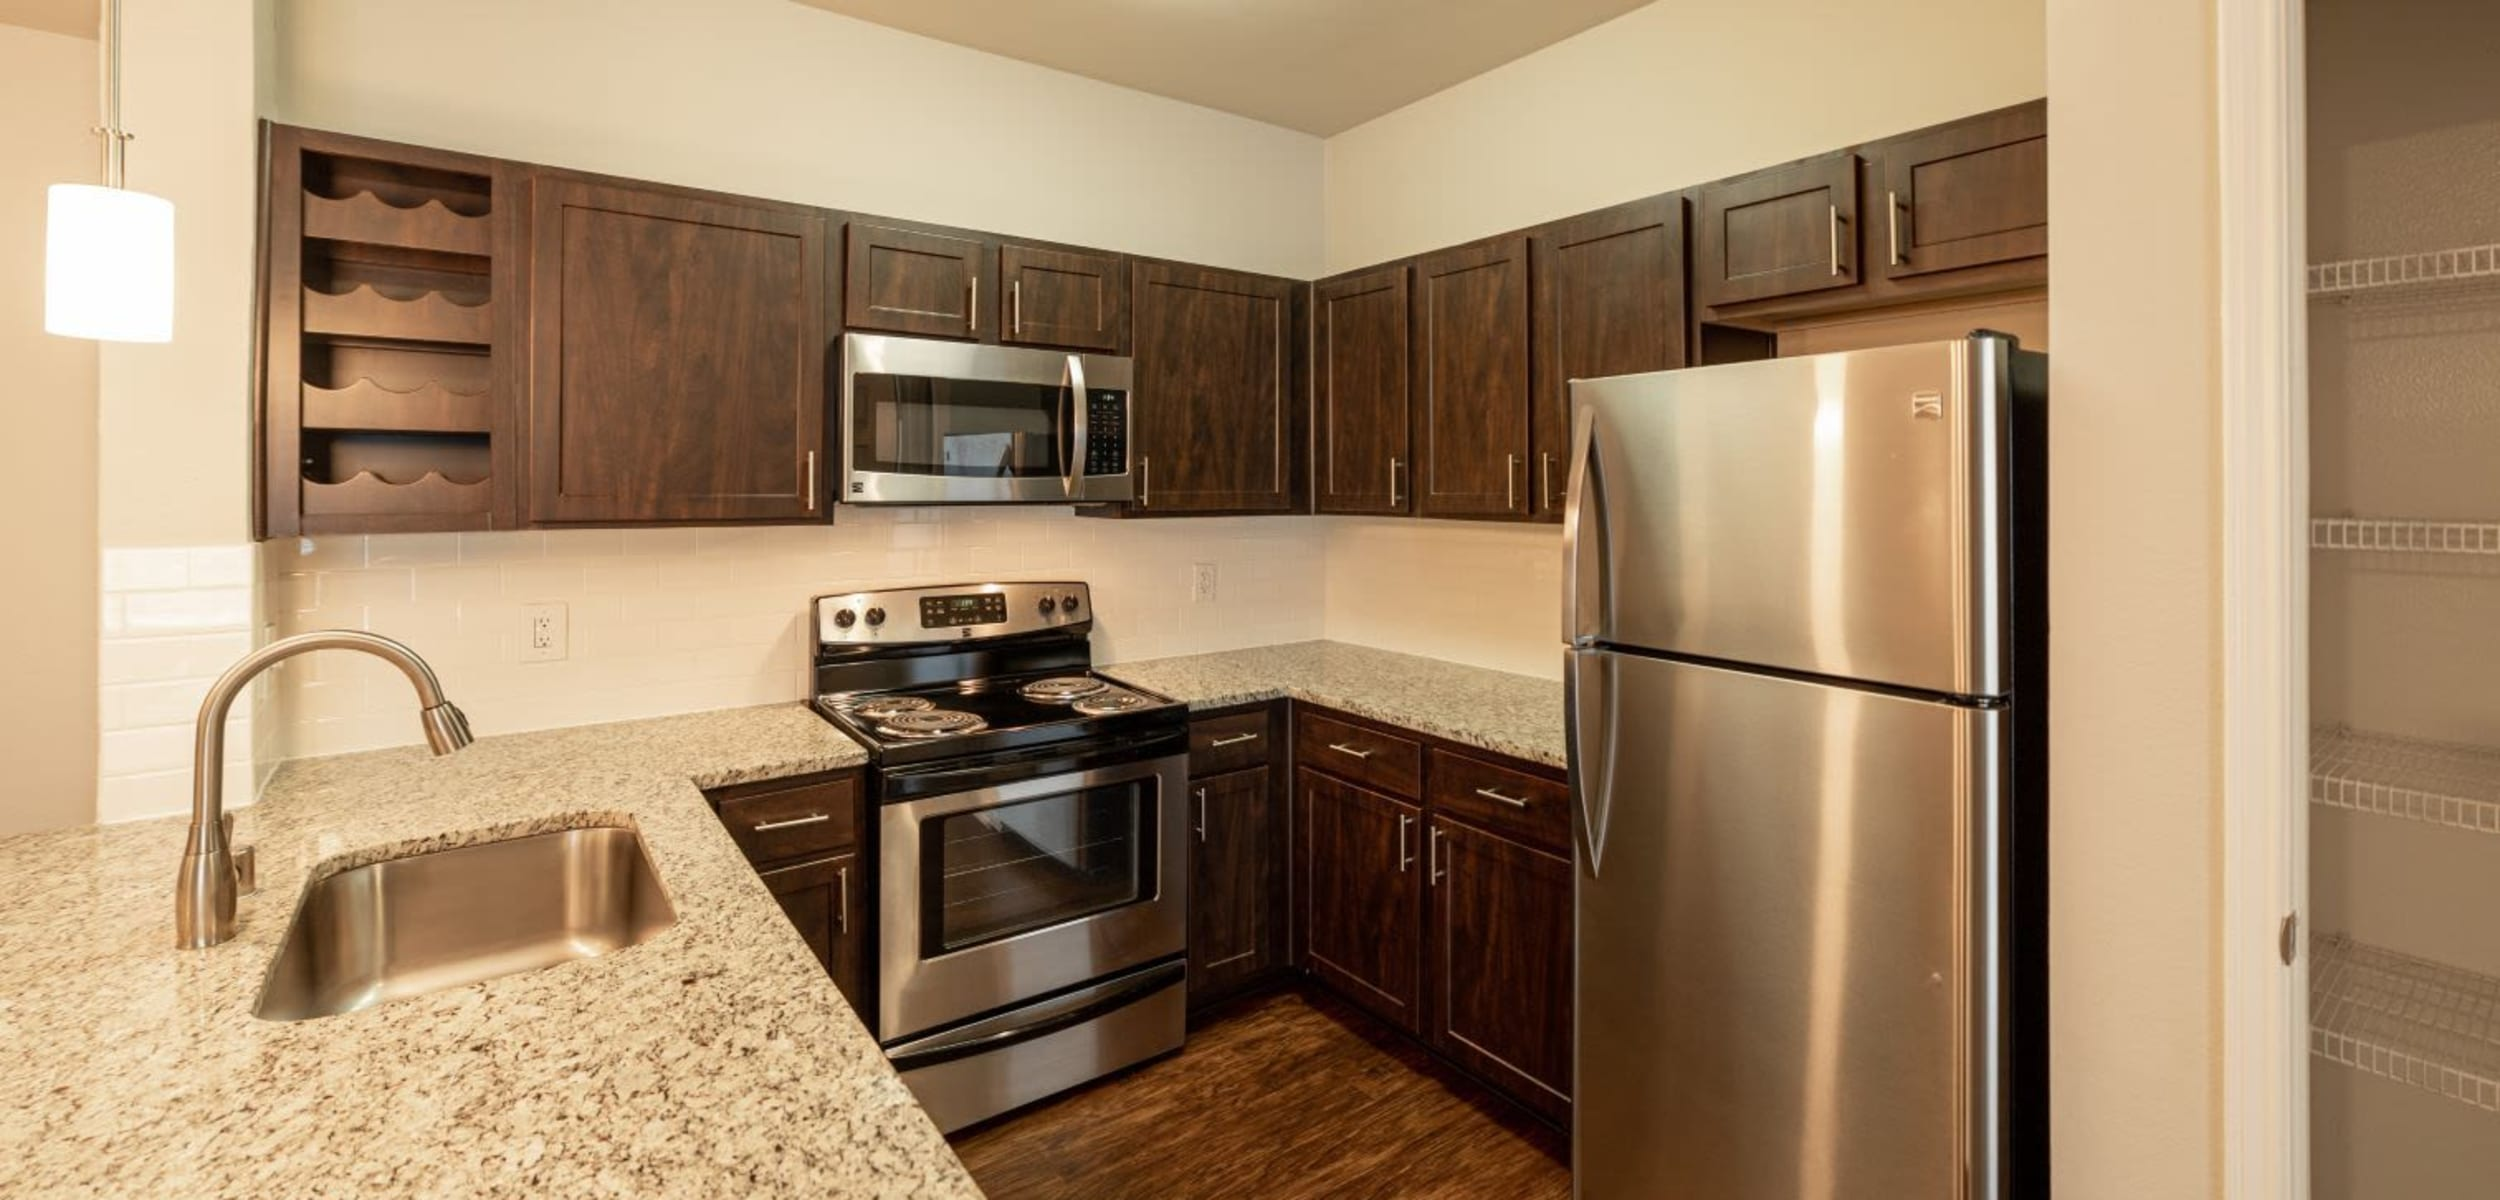 Modern kitchen with stainless steel appliances at Marquis at Stonebriar in Frisco, Texas